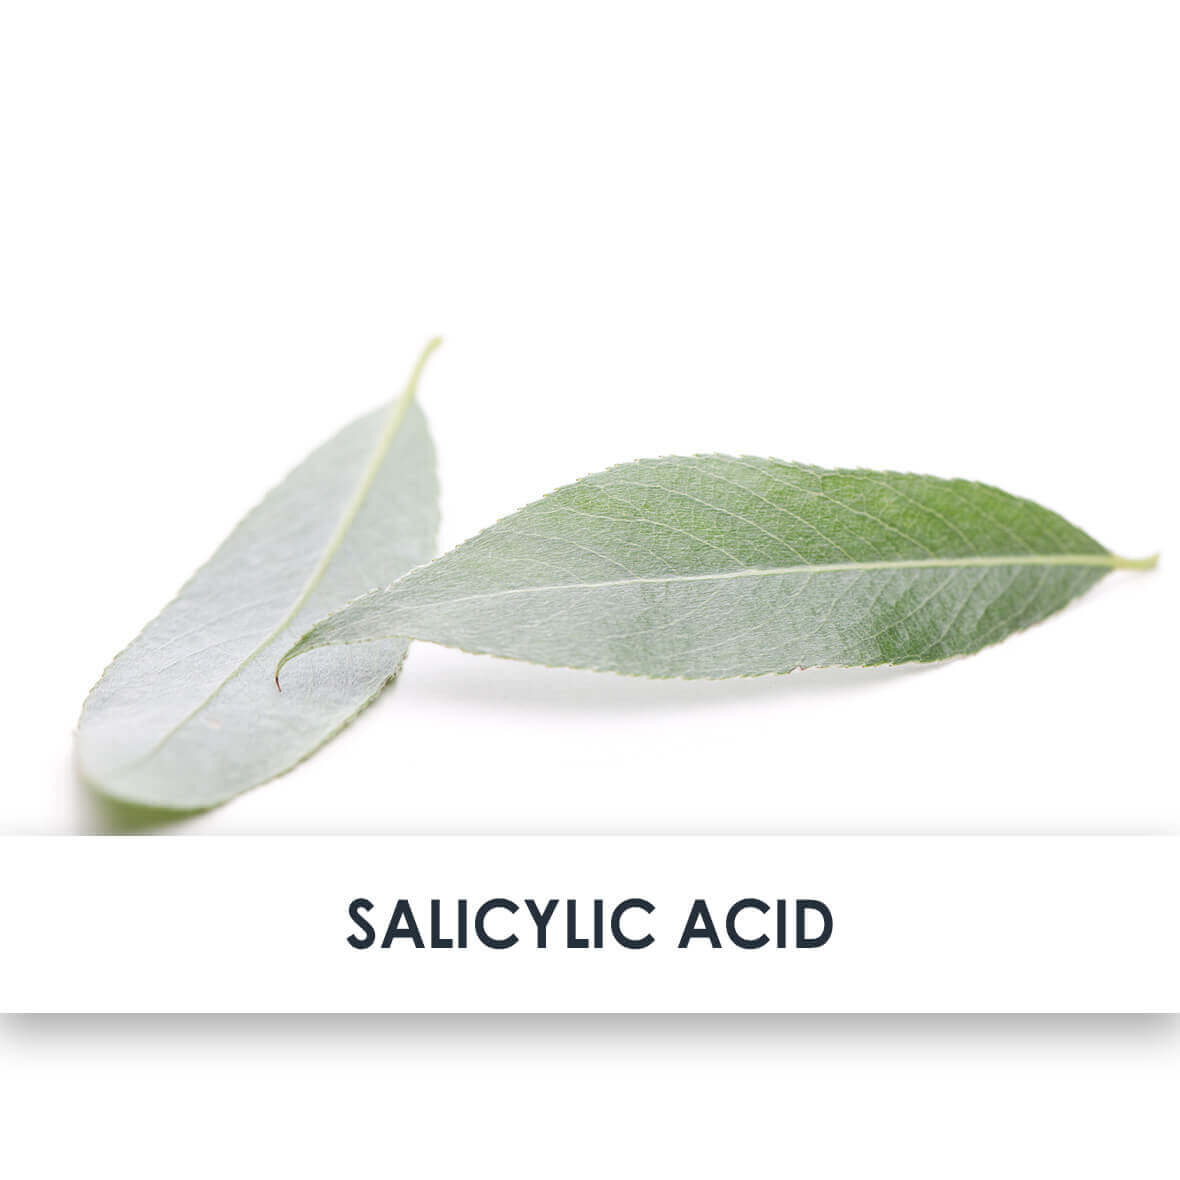 Salicylic Acid Skincare Benefits